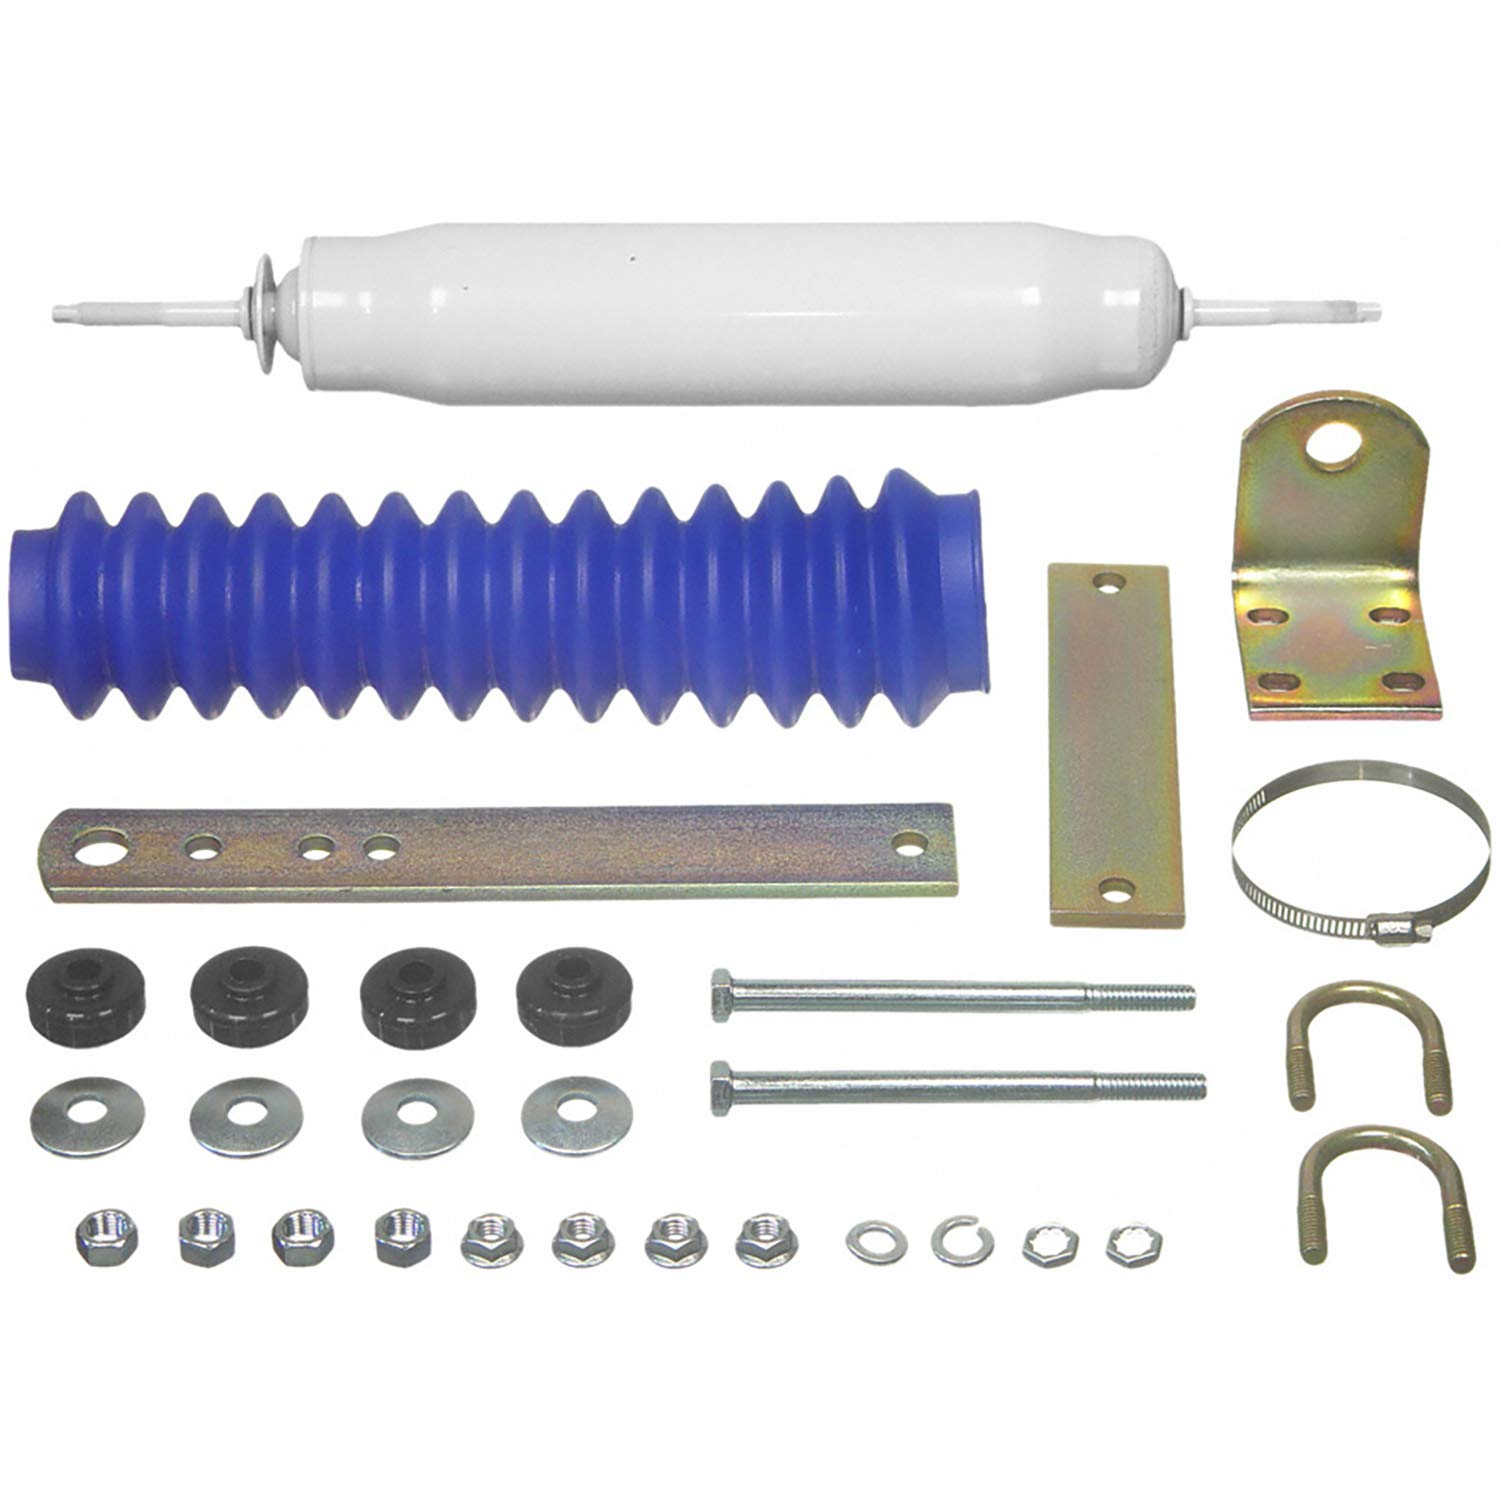 Rare Parts RP51235 Steering Stabilizer